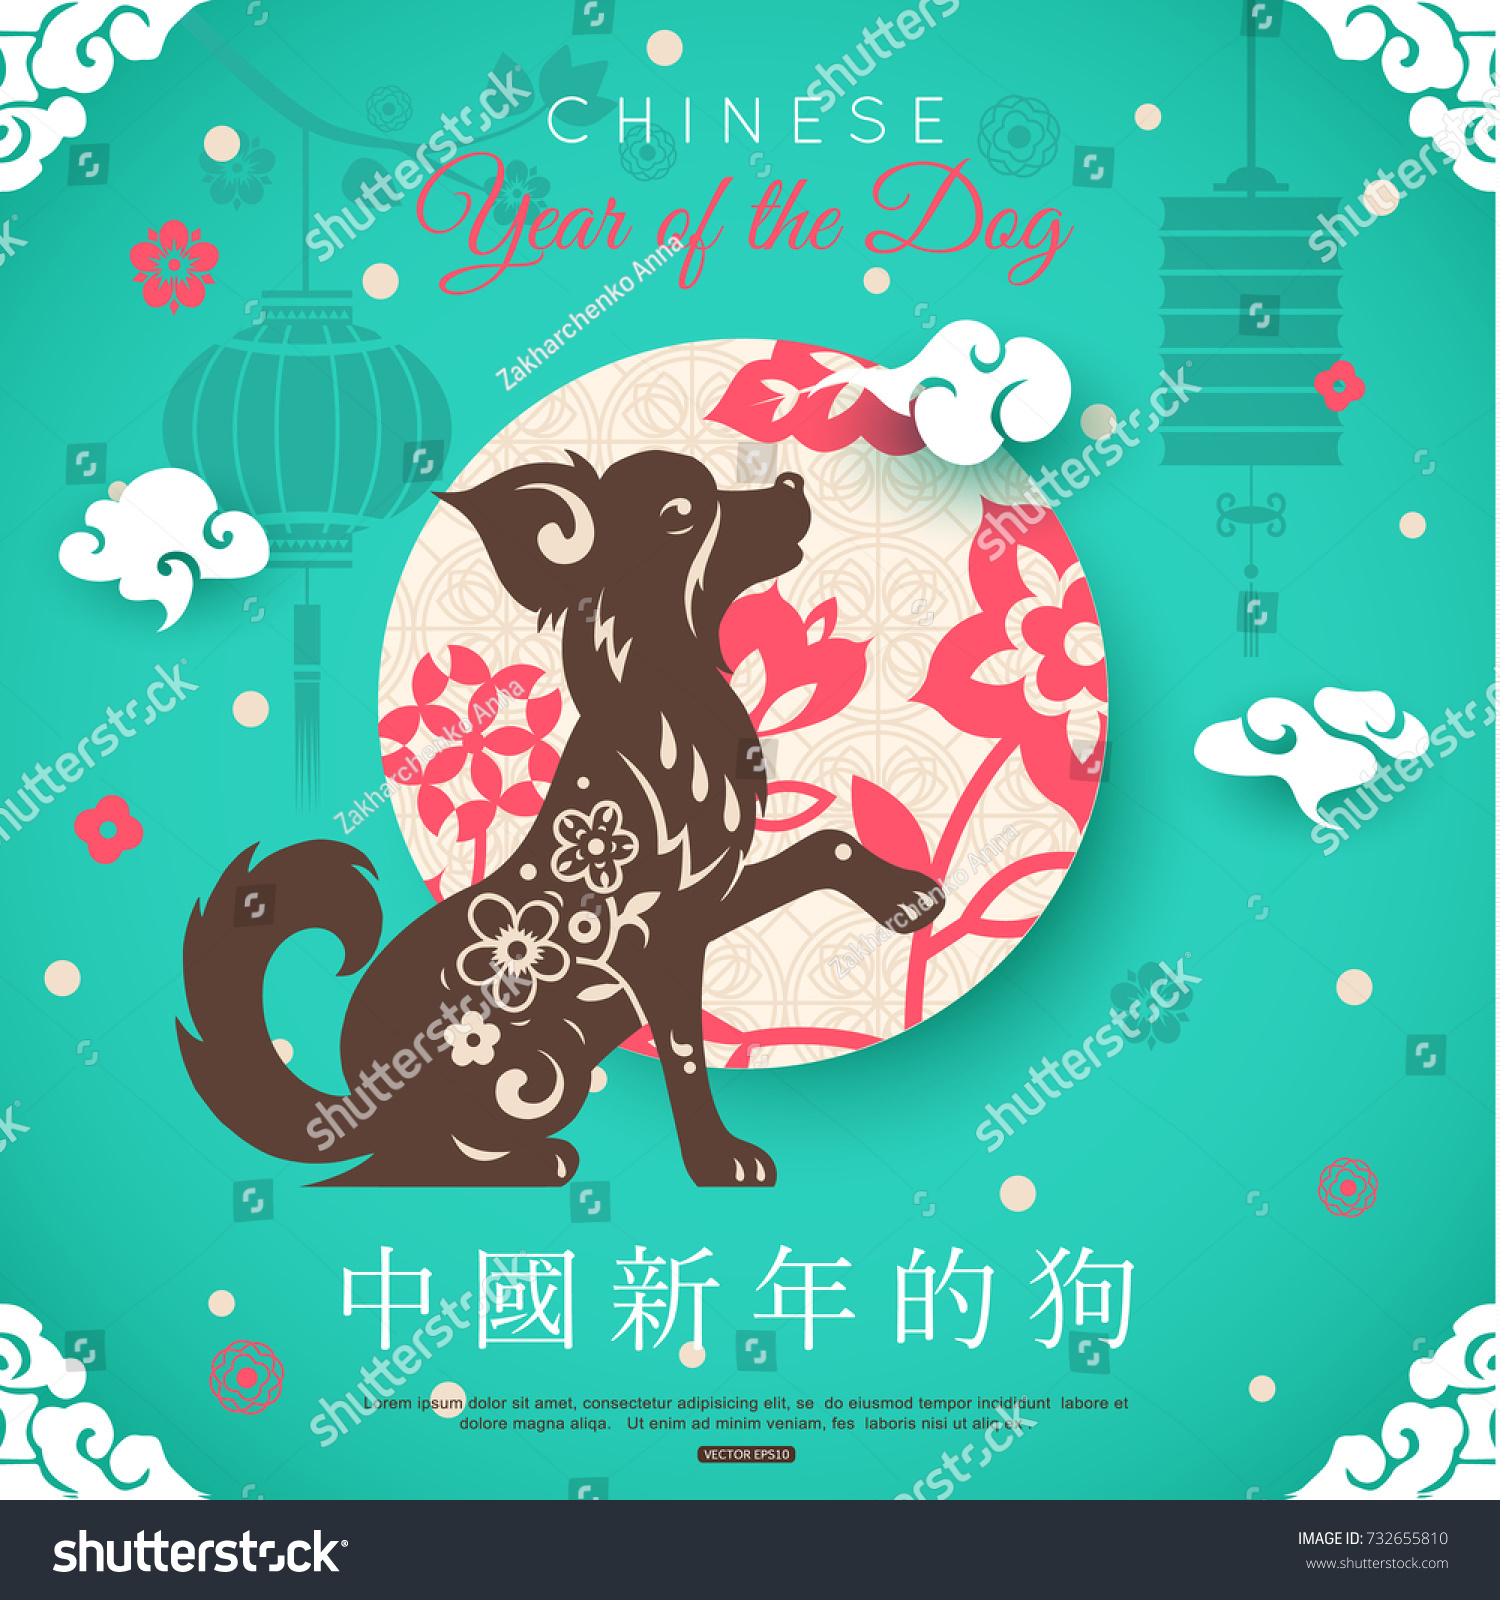 greeting card for 2018 chinese new year with cute dog and traditional asian decor clouds